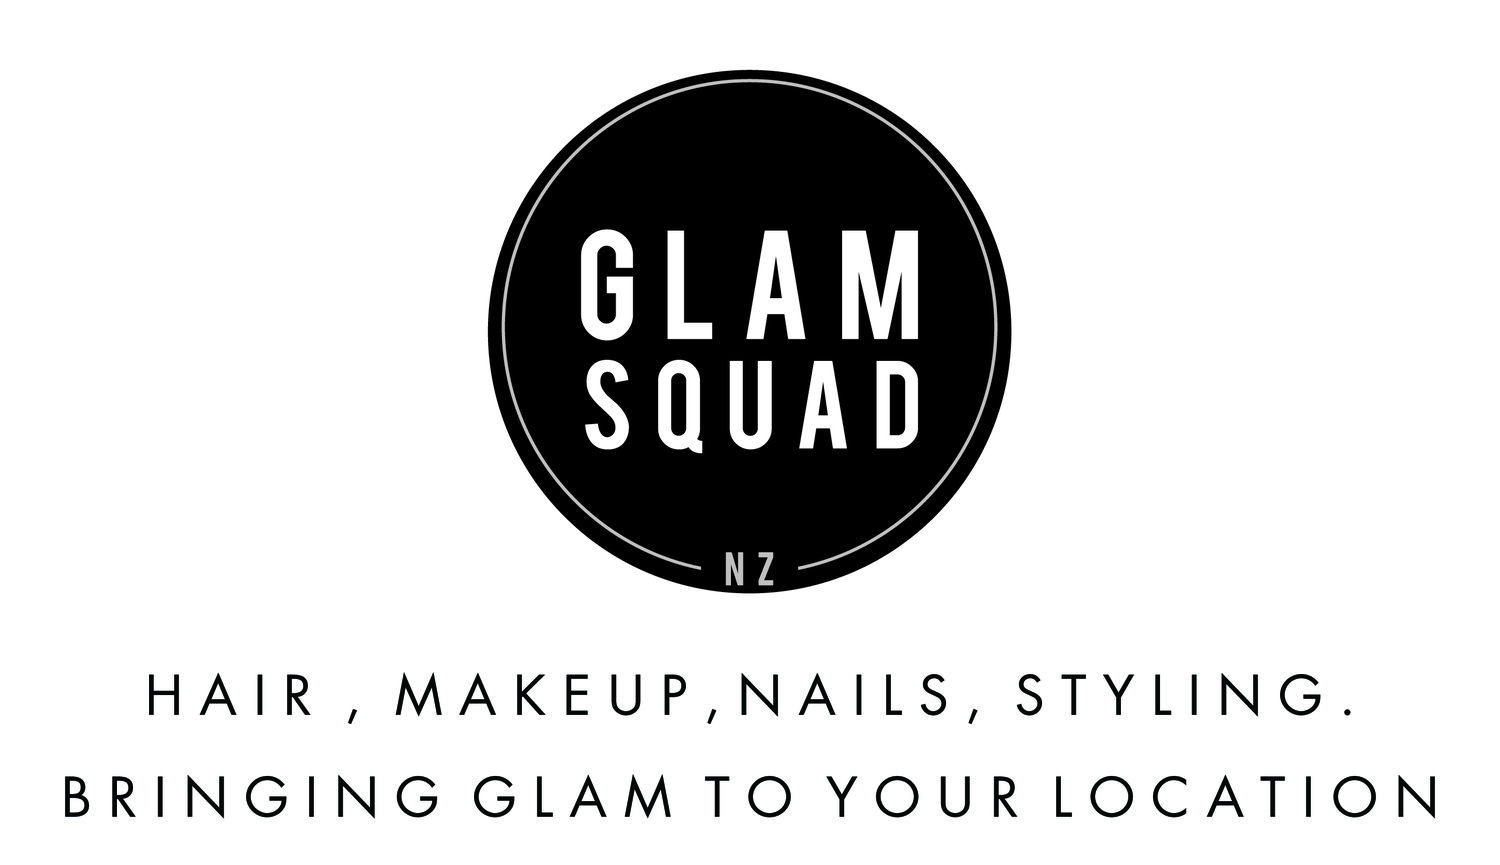 Glam Squad - Wedding and Editorial Hair, Makeup and Styling